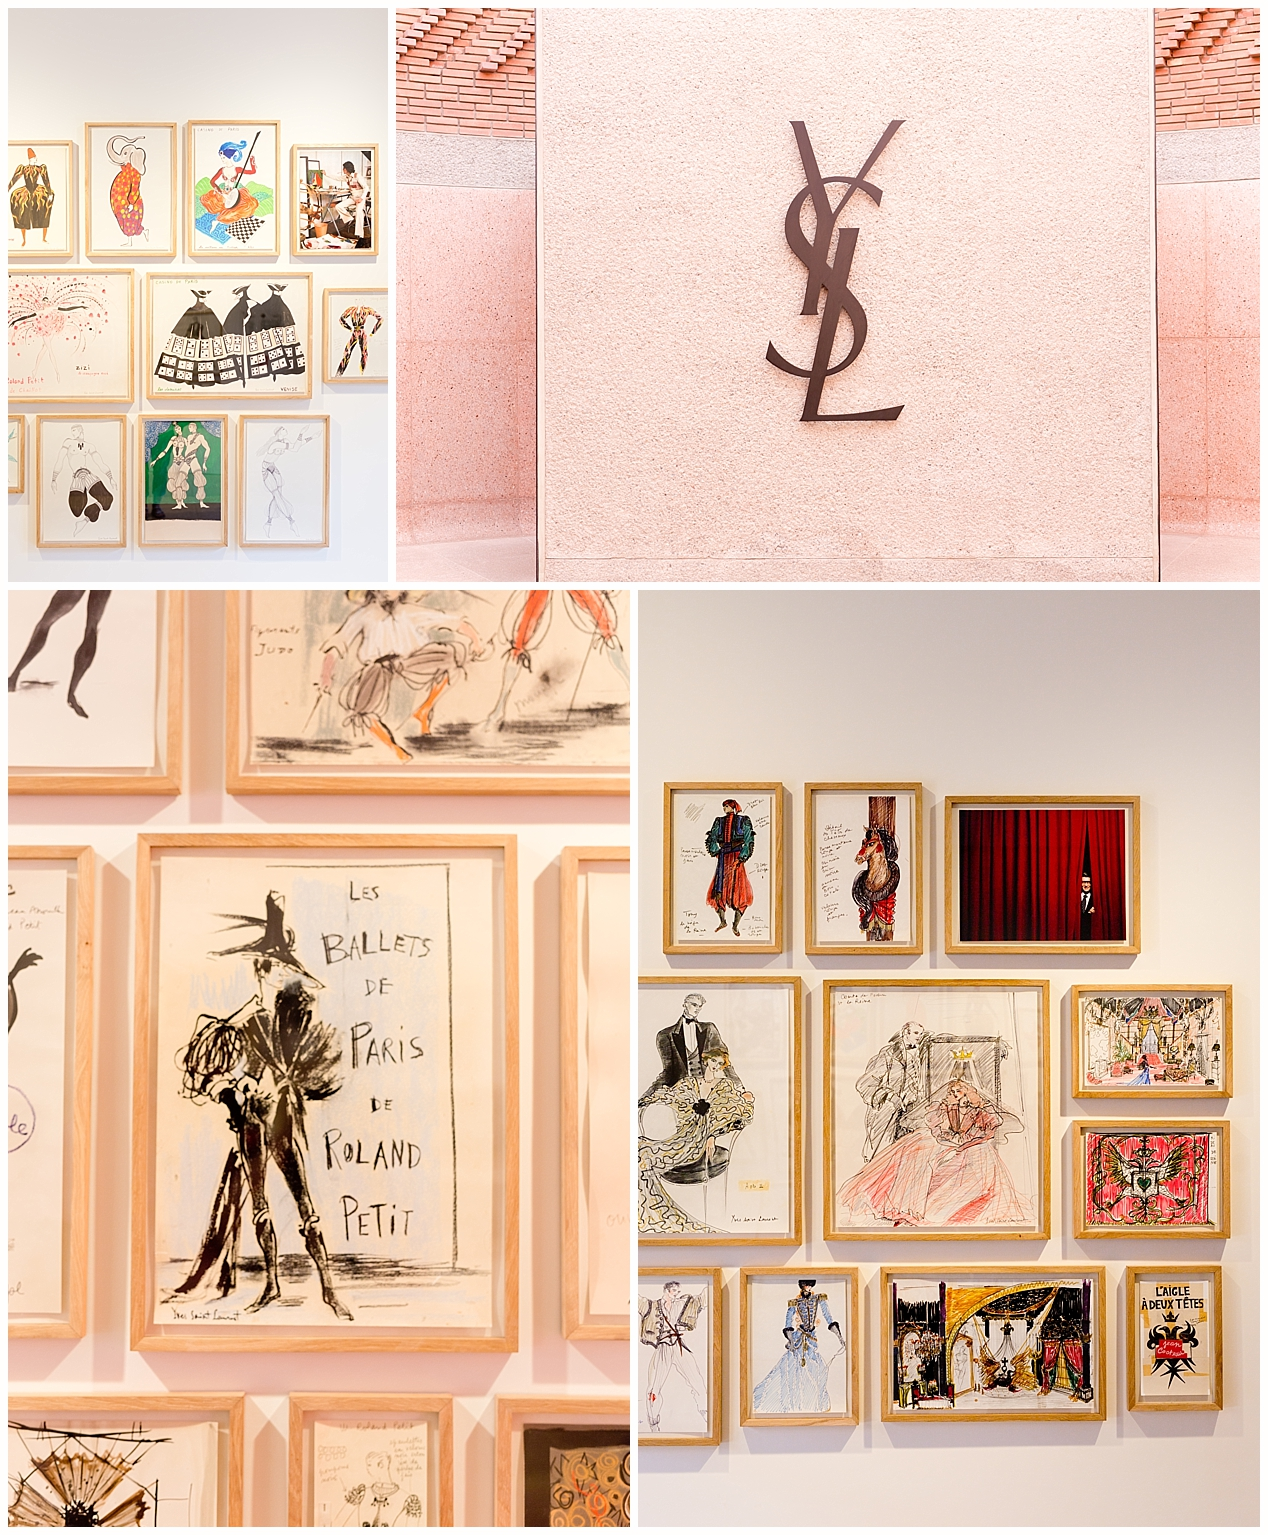 Yves Saint Laurent Museum in Marrakech, Morocco - YSL fashion illustrations